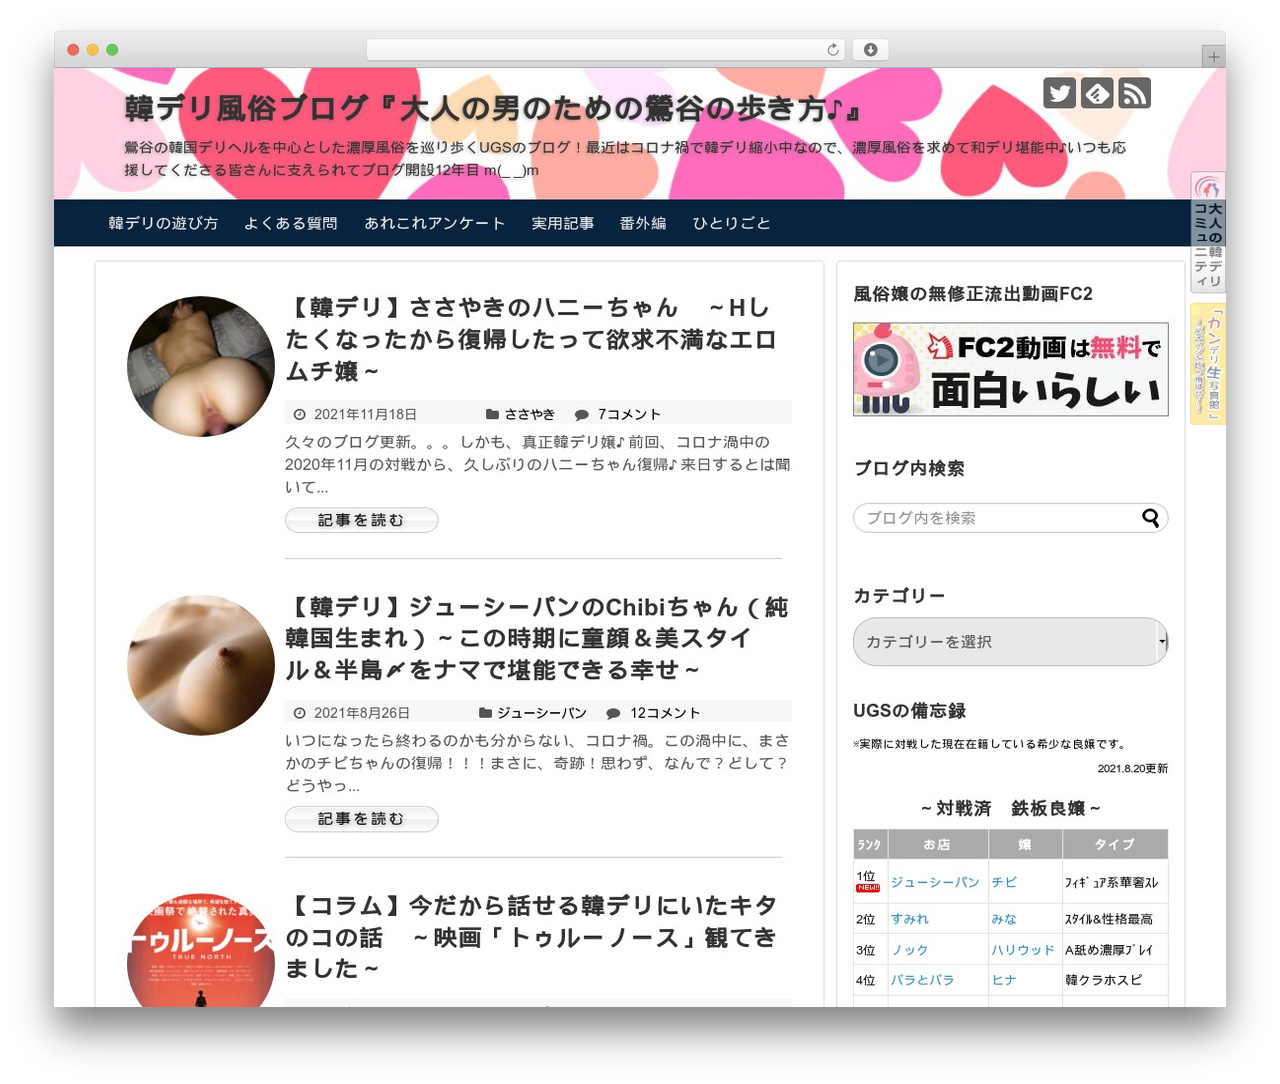 Simplicity2 best WordPress theme - ugs.kanphoto.net